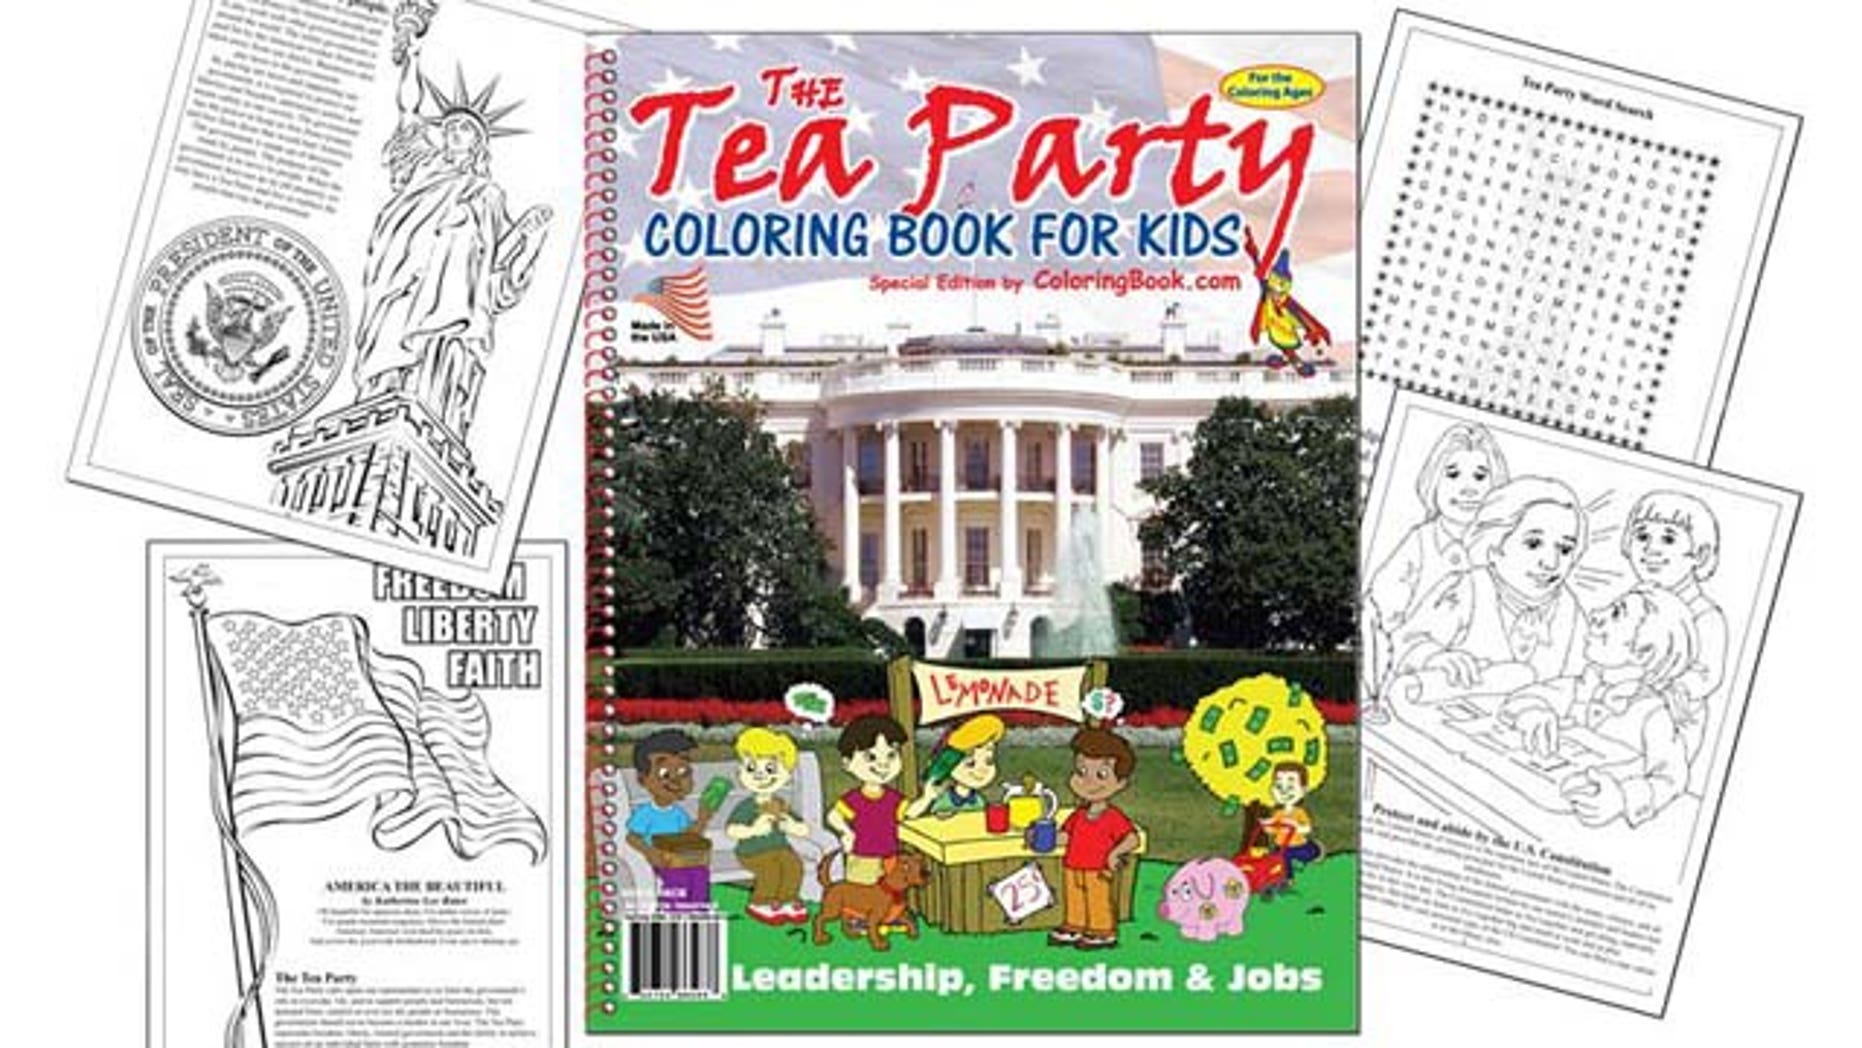 """The Tea Party Coloring Book"" is available for $3.59 from Clayton, Mo.-based Really Big Coloring Books, Inc."